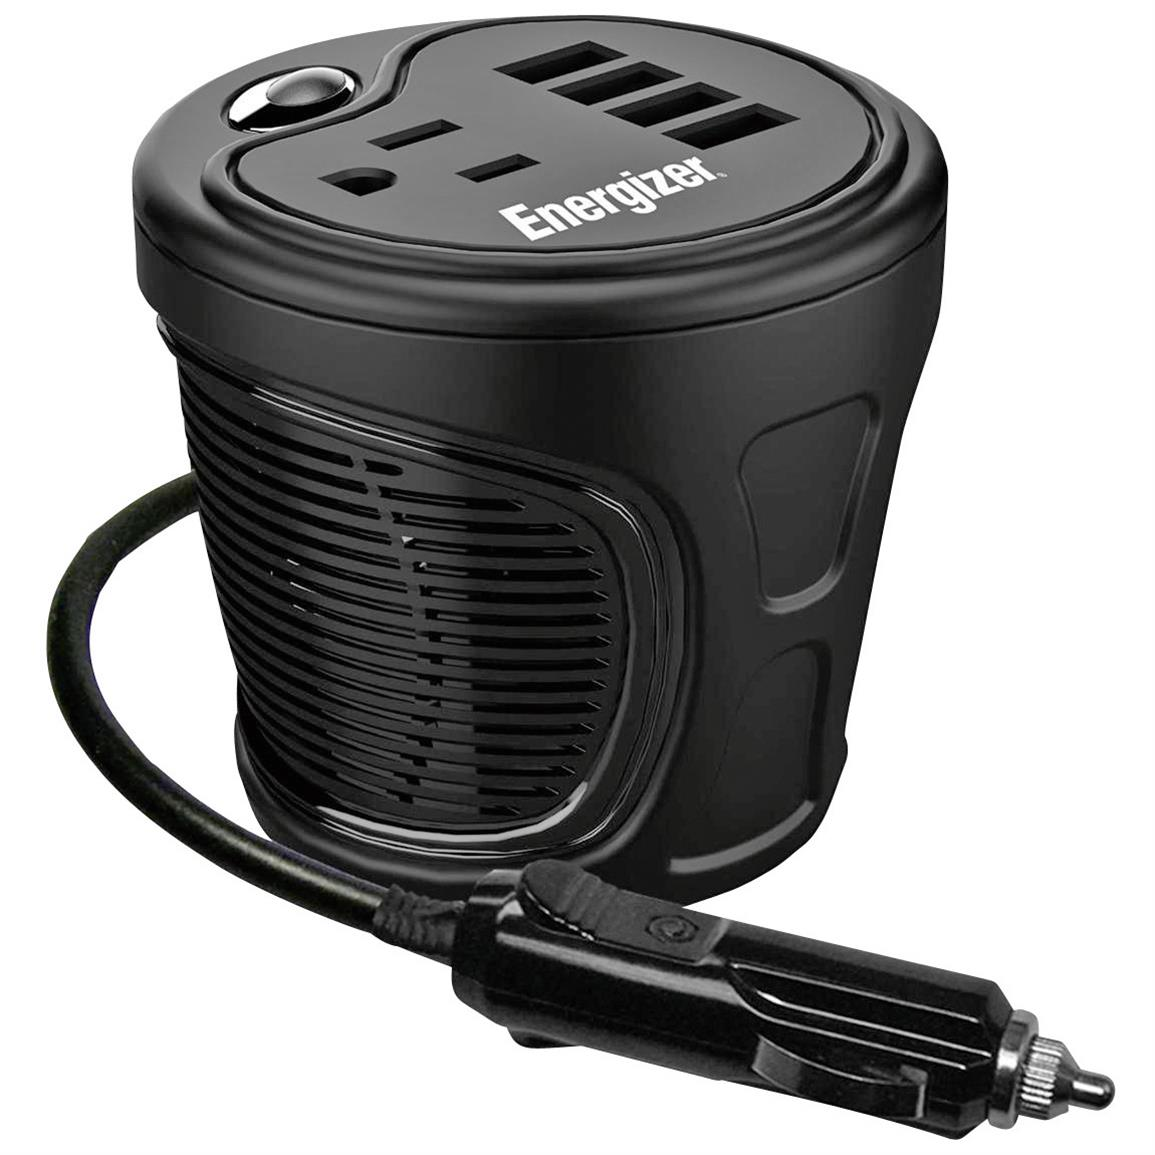 Energizer 120W Cup Inverter